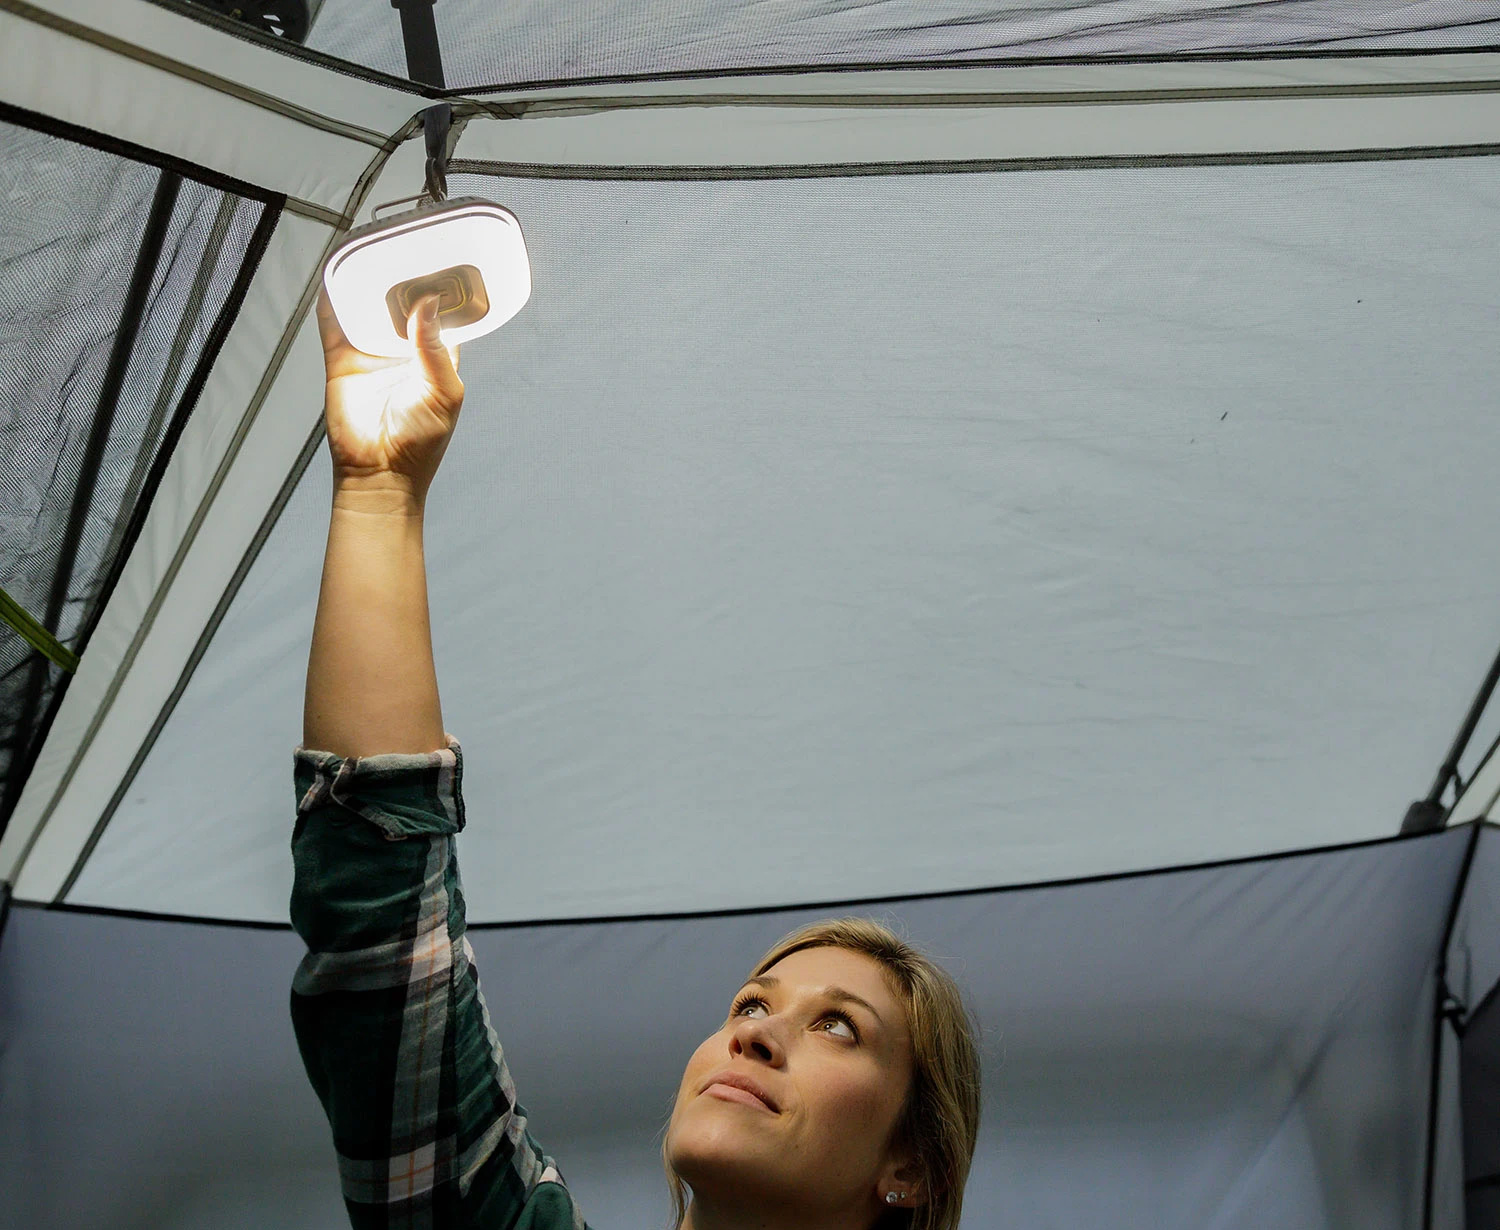 The Core 100 Keeps Your Tent Lit Up After Dark at werd.com